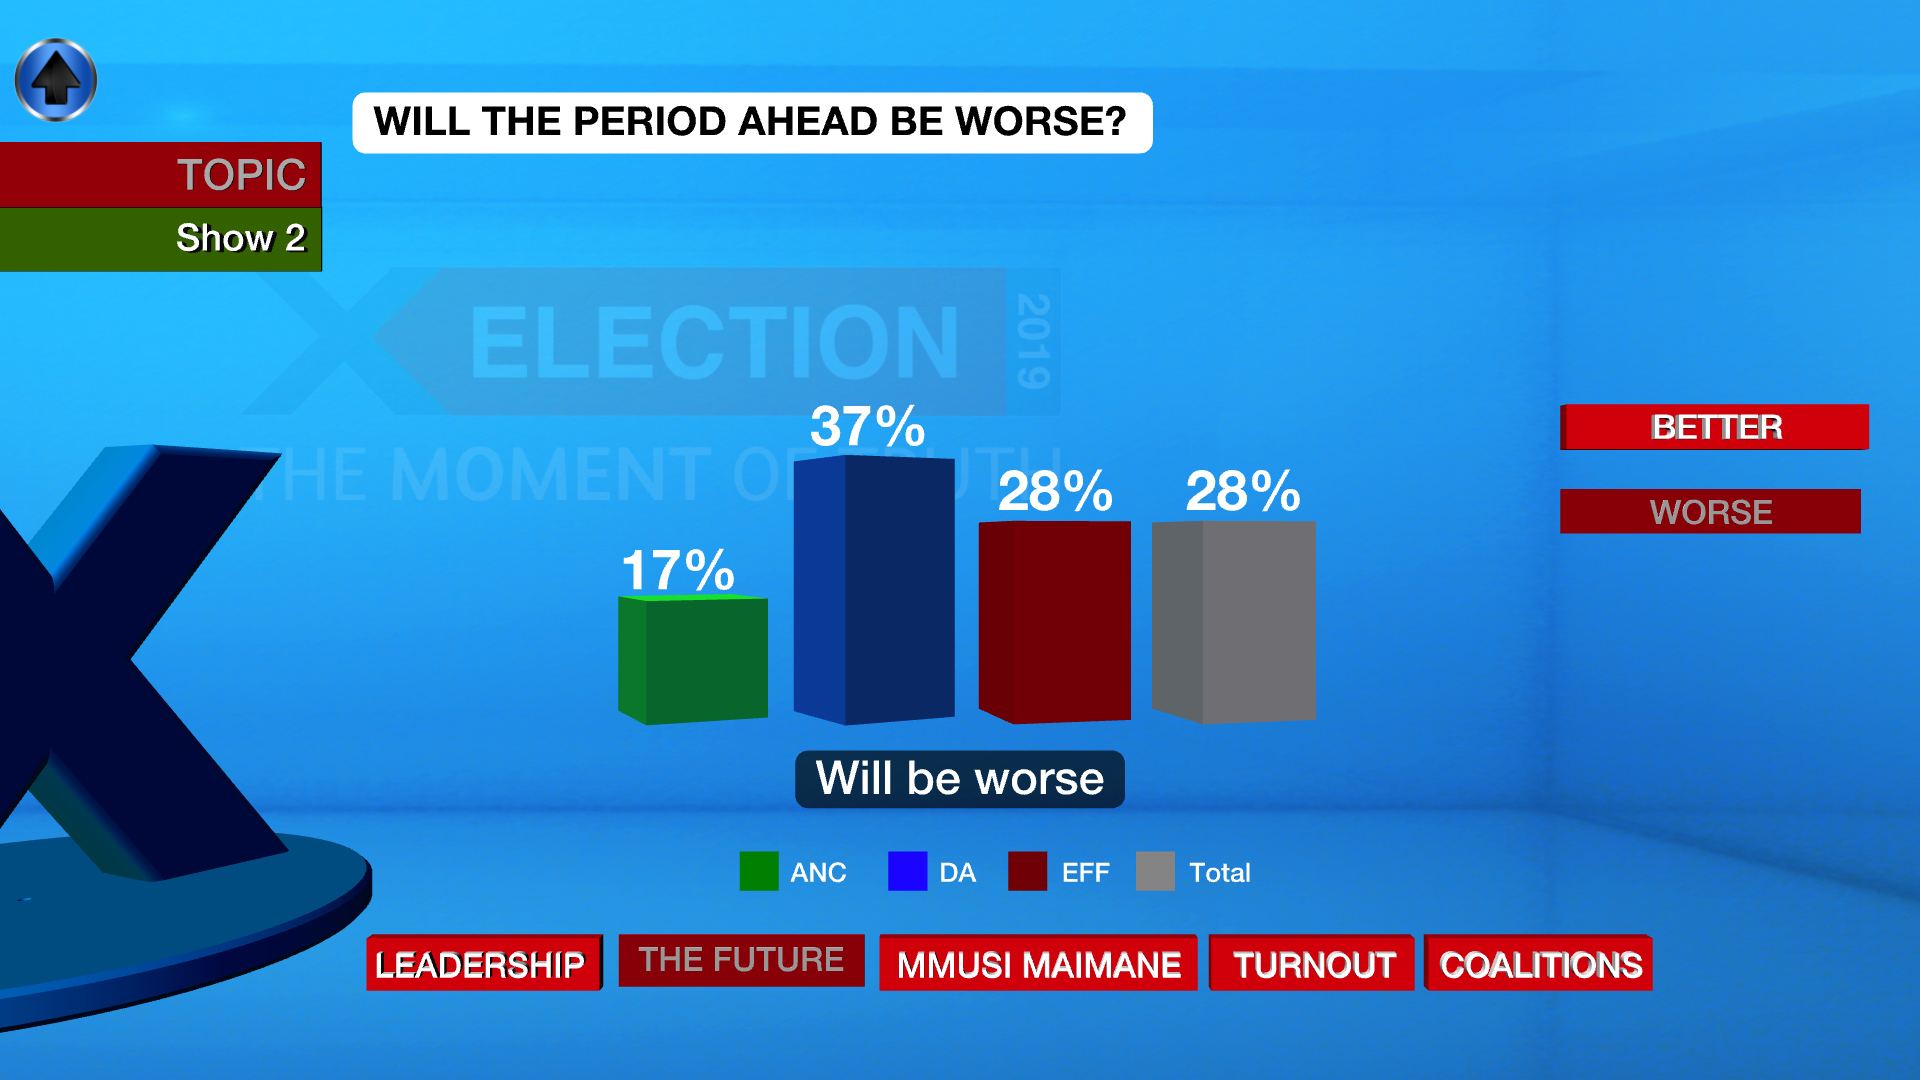 The level of political party morale is indicated by the amount of voters of whom believe the period ahead will be worse.